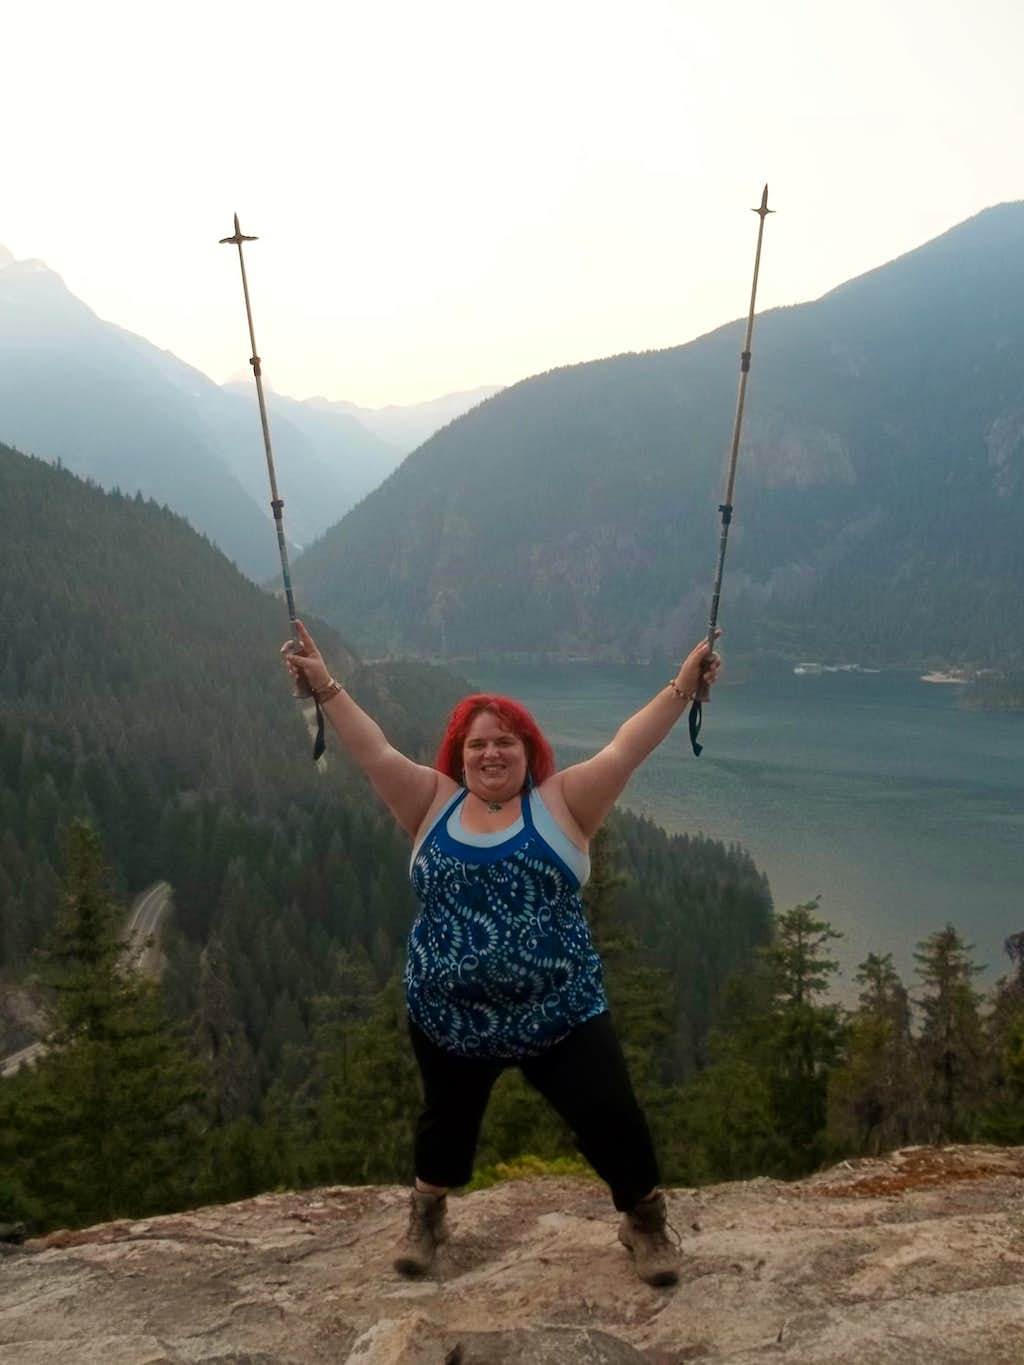 BearQueen celebrates her 51st summit